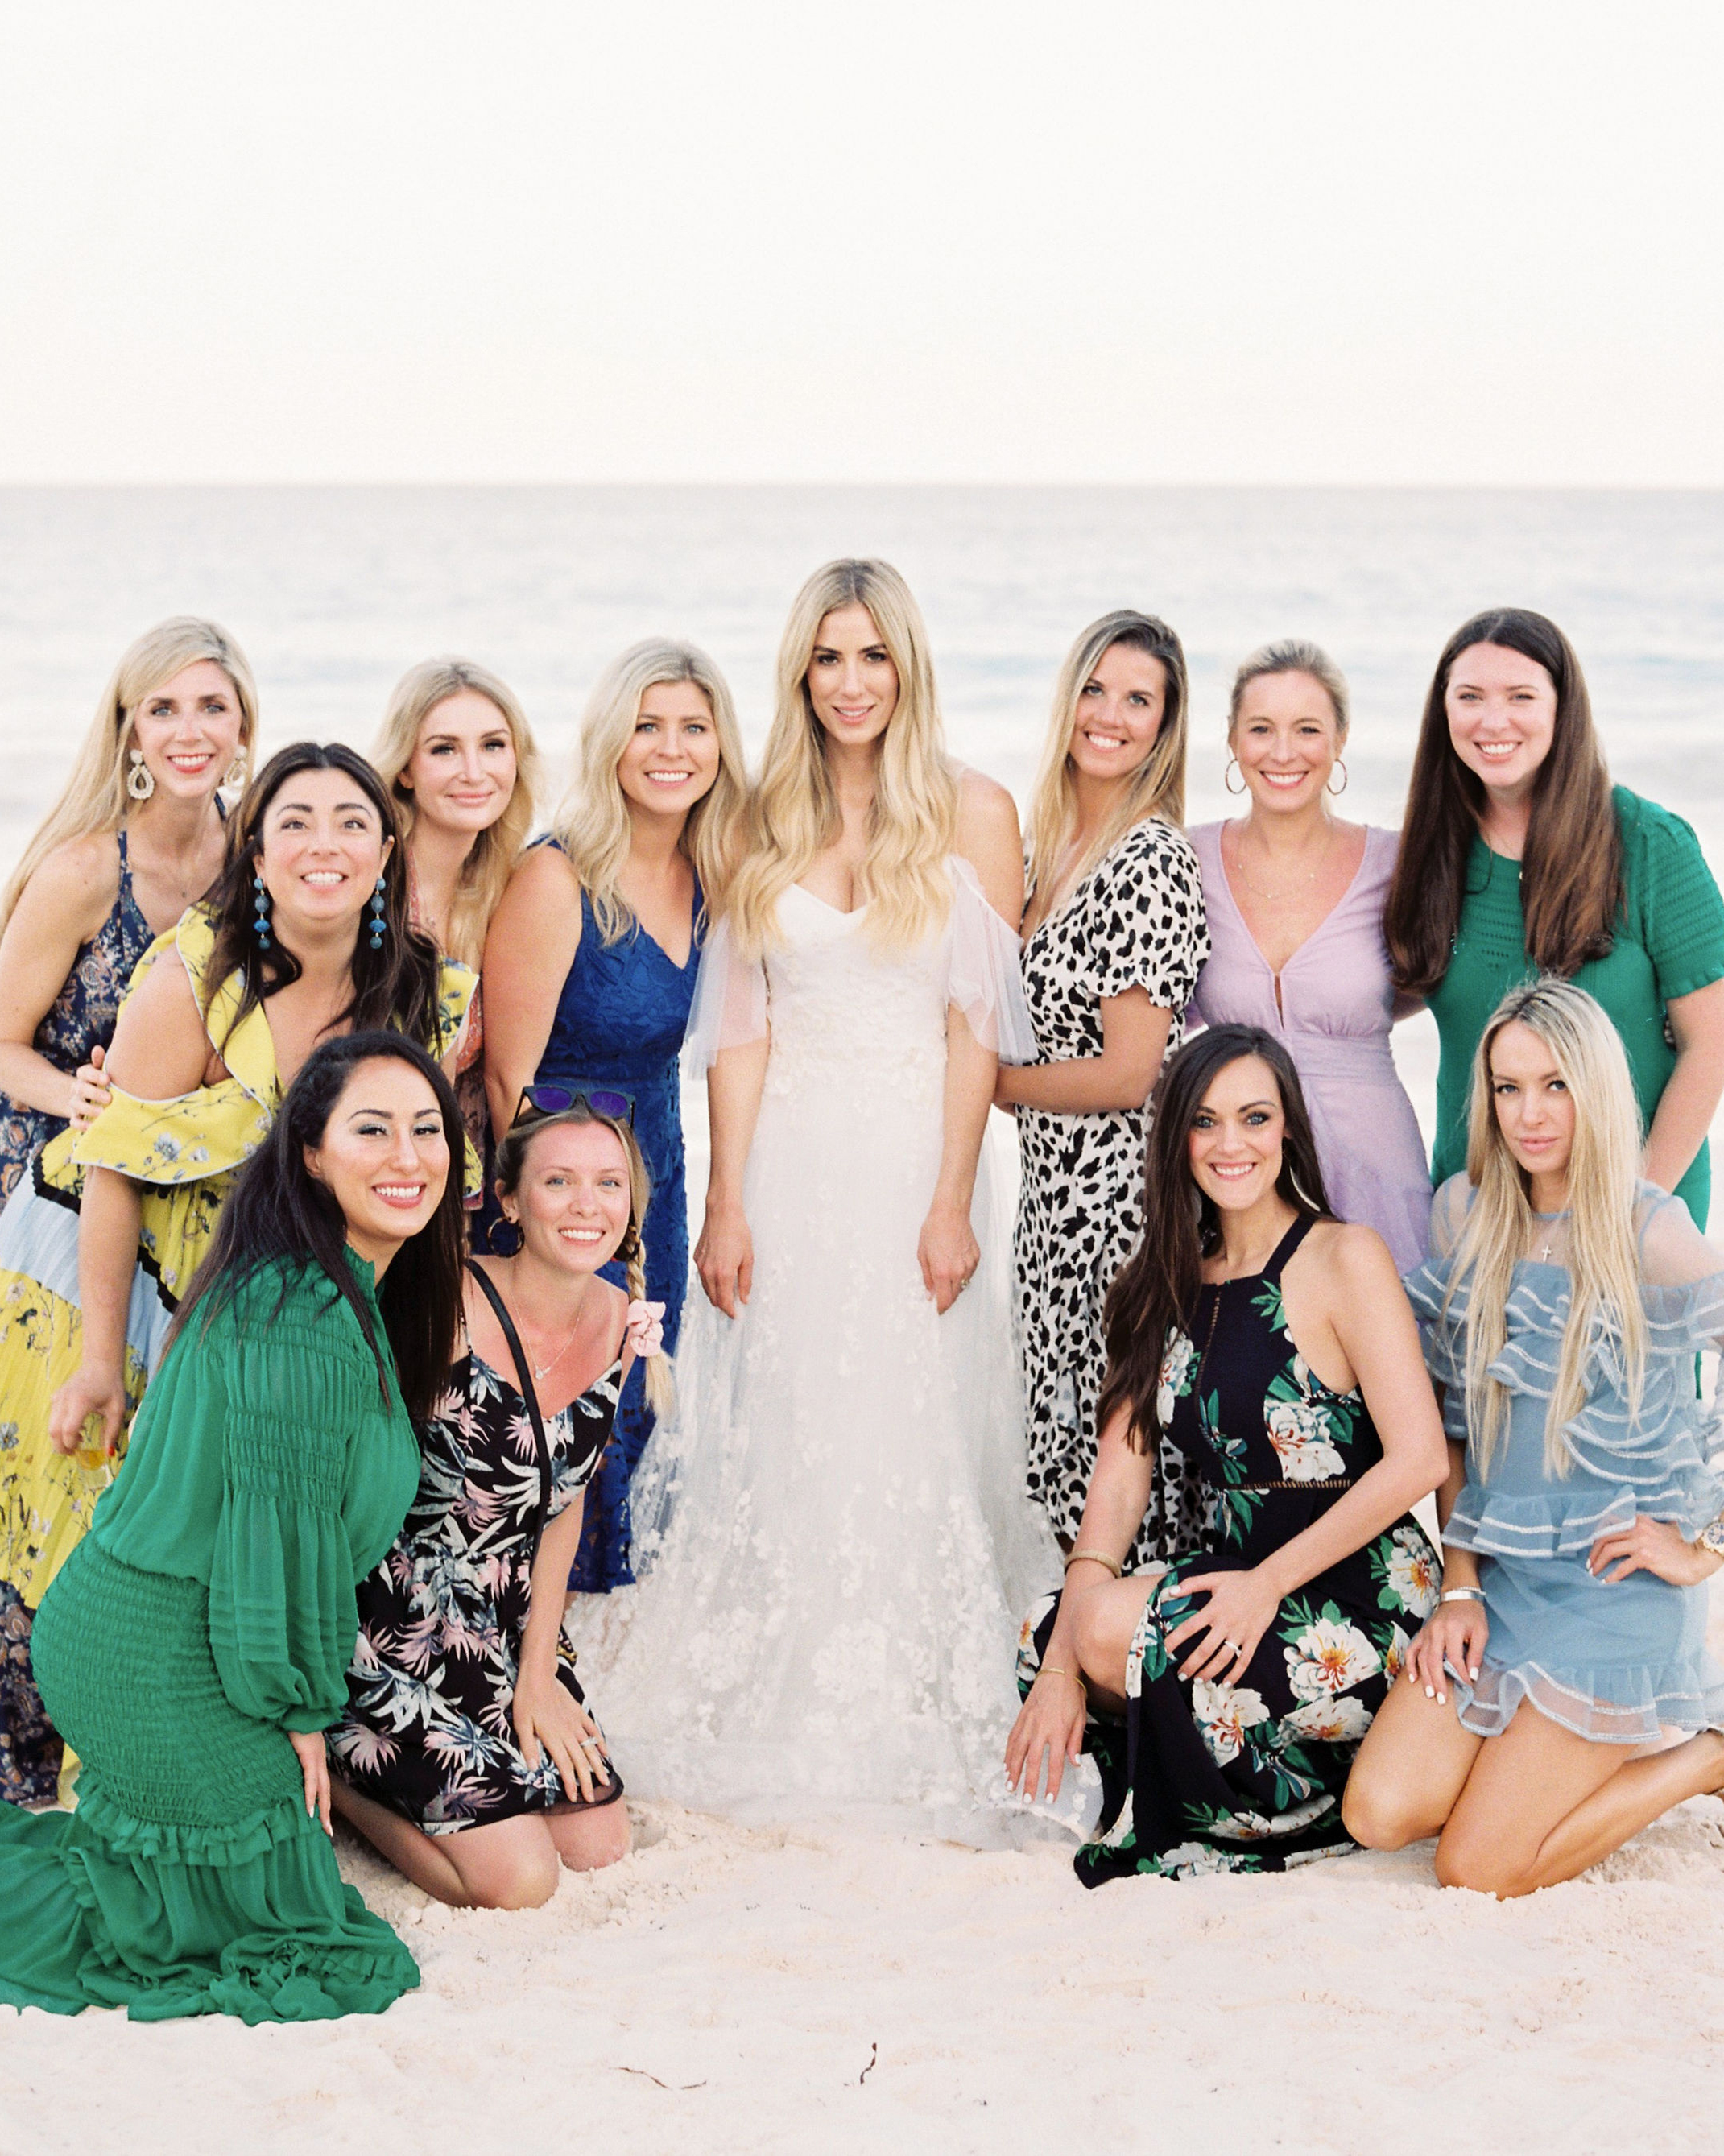 bride with female wedding guests